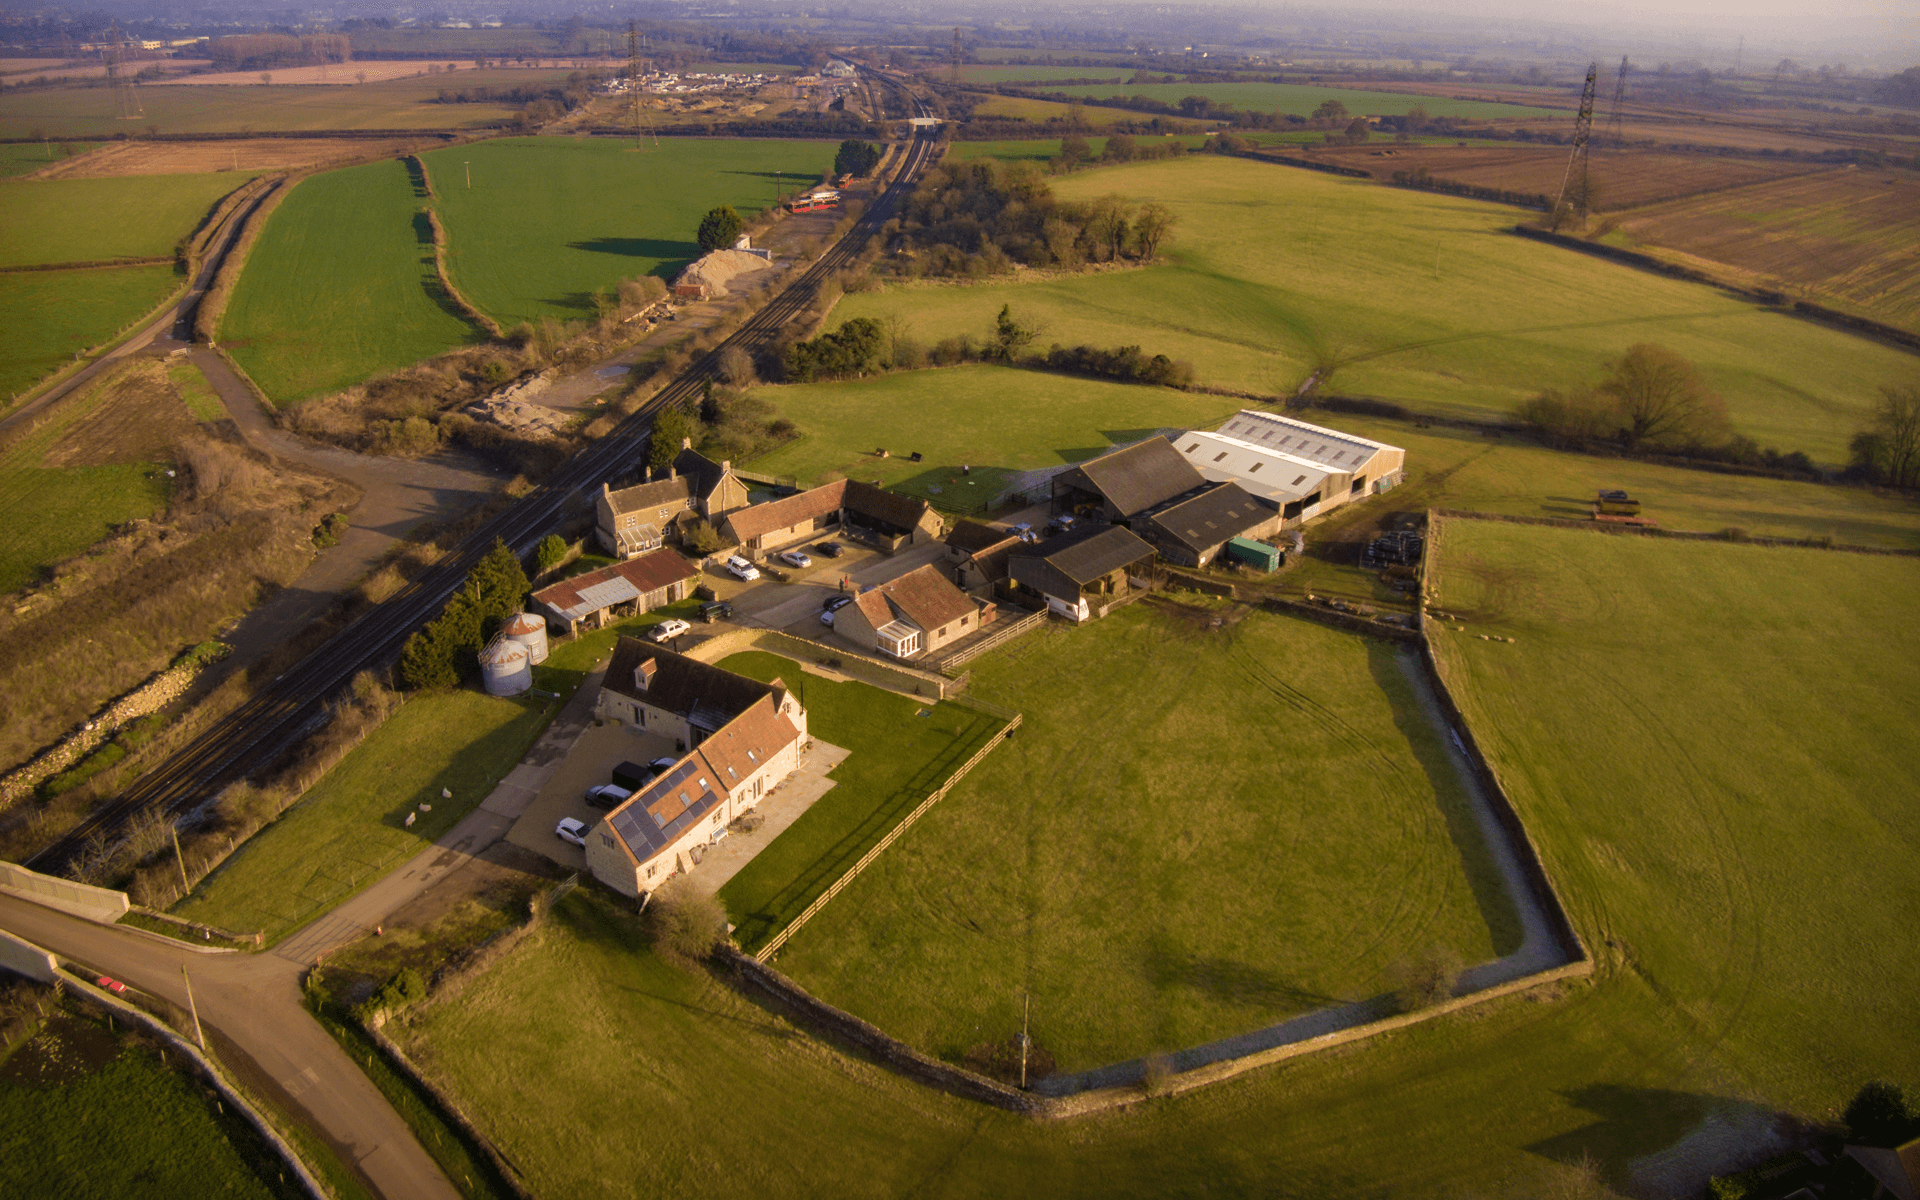 """DJI Inspire 1"" aerial drone photo of a farm in Hinton Charterhouse, Bath"